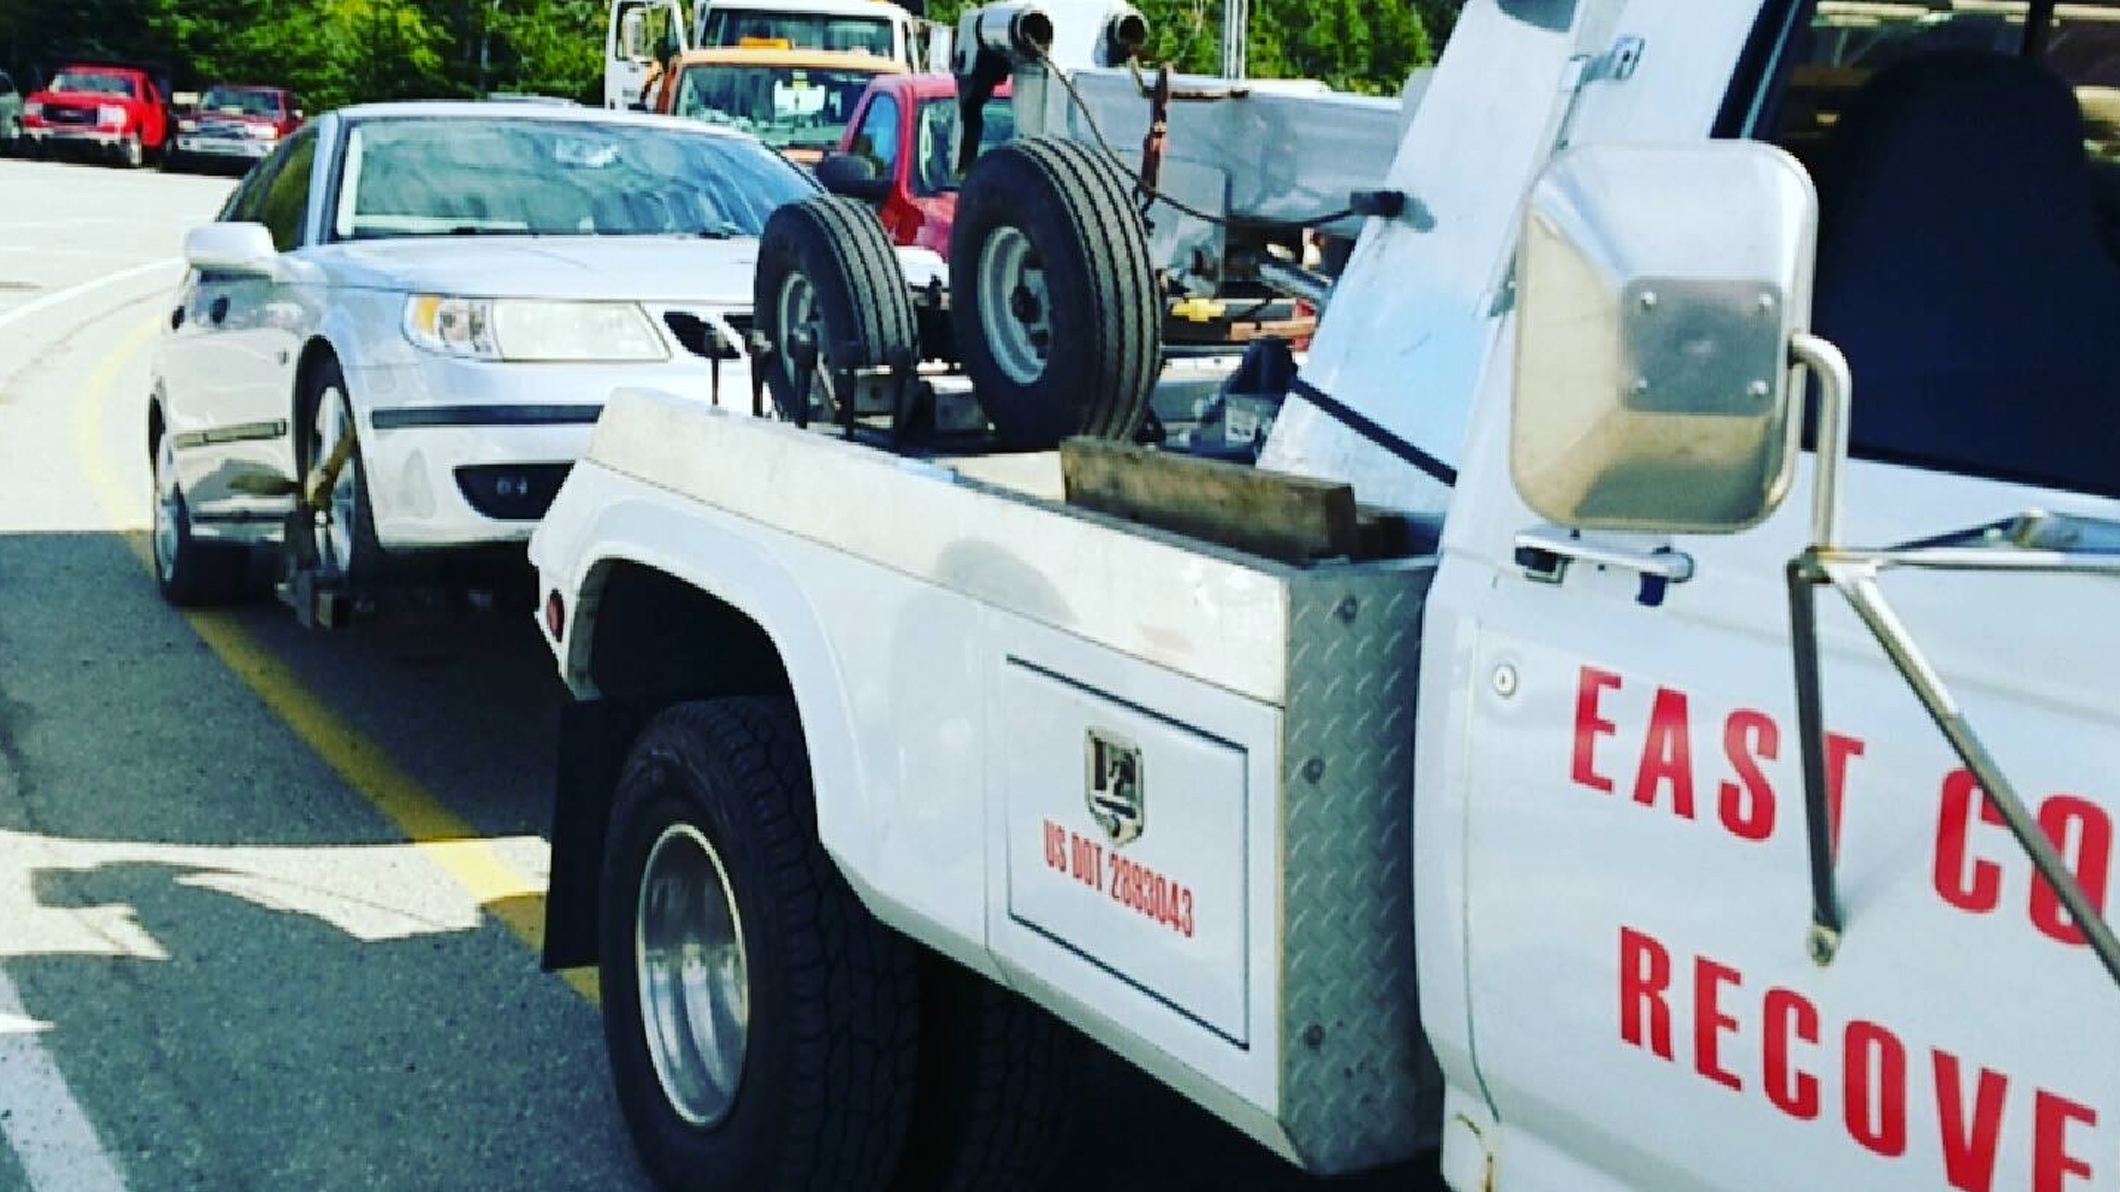 East Coast Recovery & Towing image 0